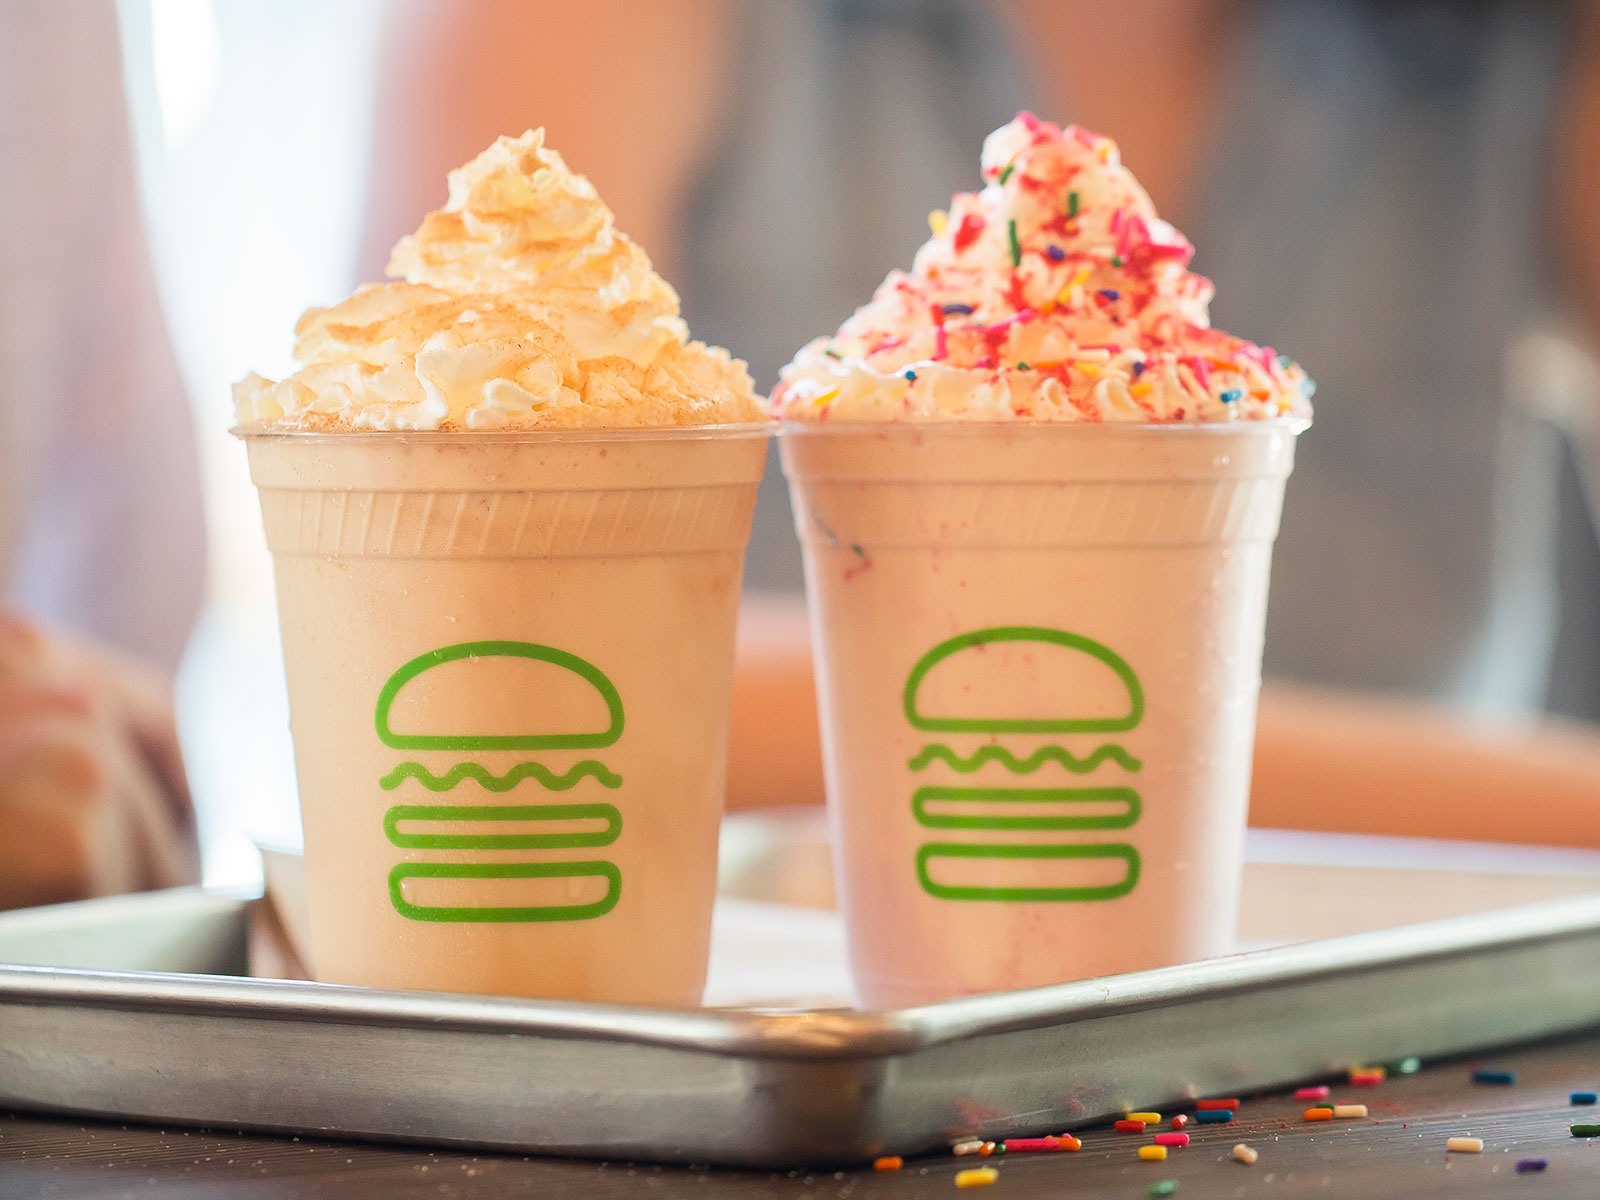 Will & Grace themed shakes at shake shack